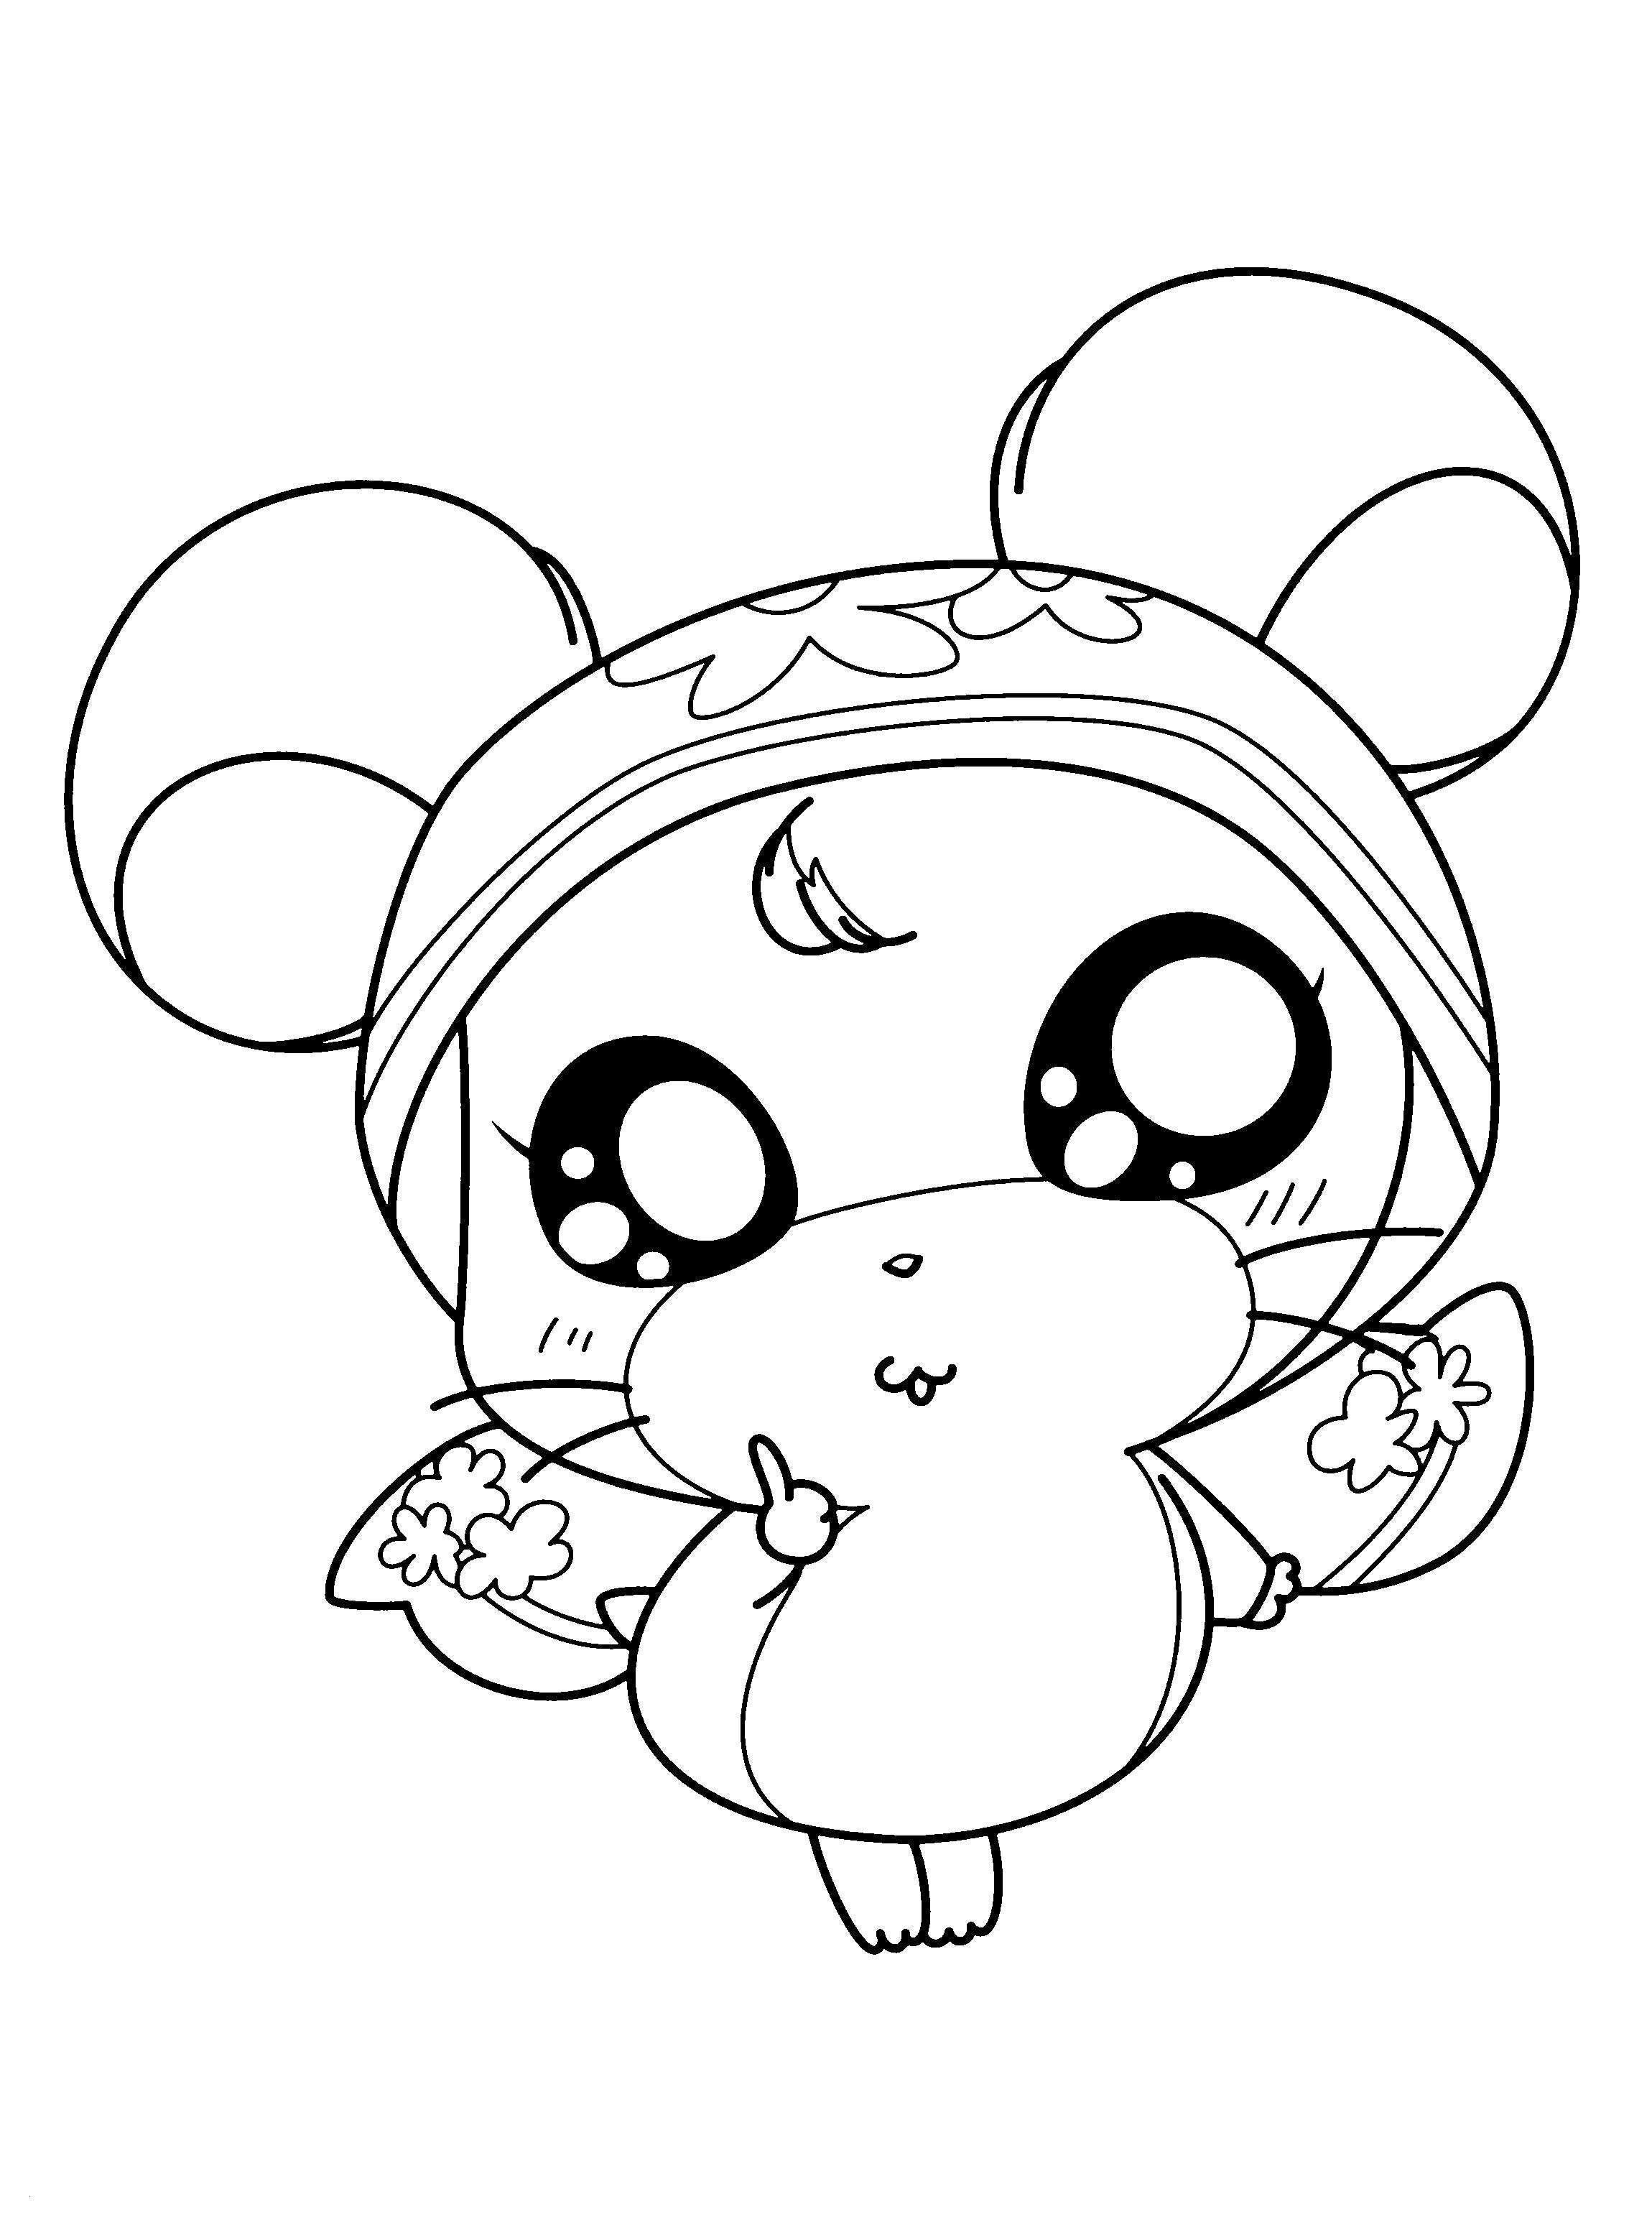 Scary Halloween Coloring Pages Best Of Unique Halloween Coloring Pages For 5th Graders Bird Coloring Pages Animal Coloring Pages Turtle Coloring Pages